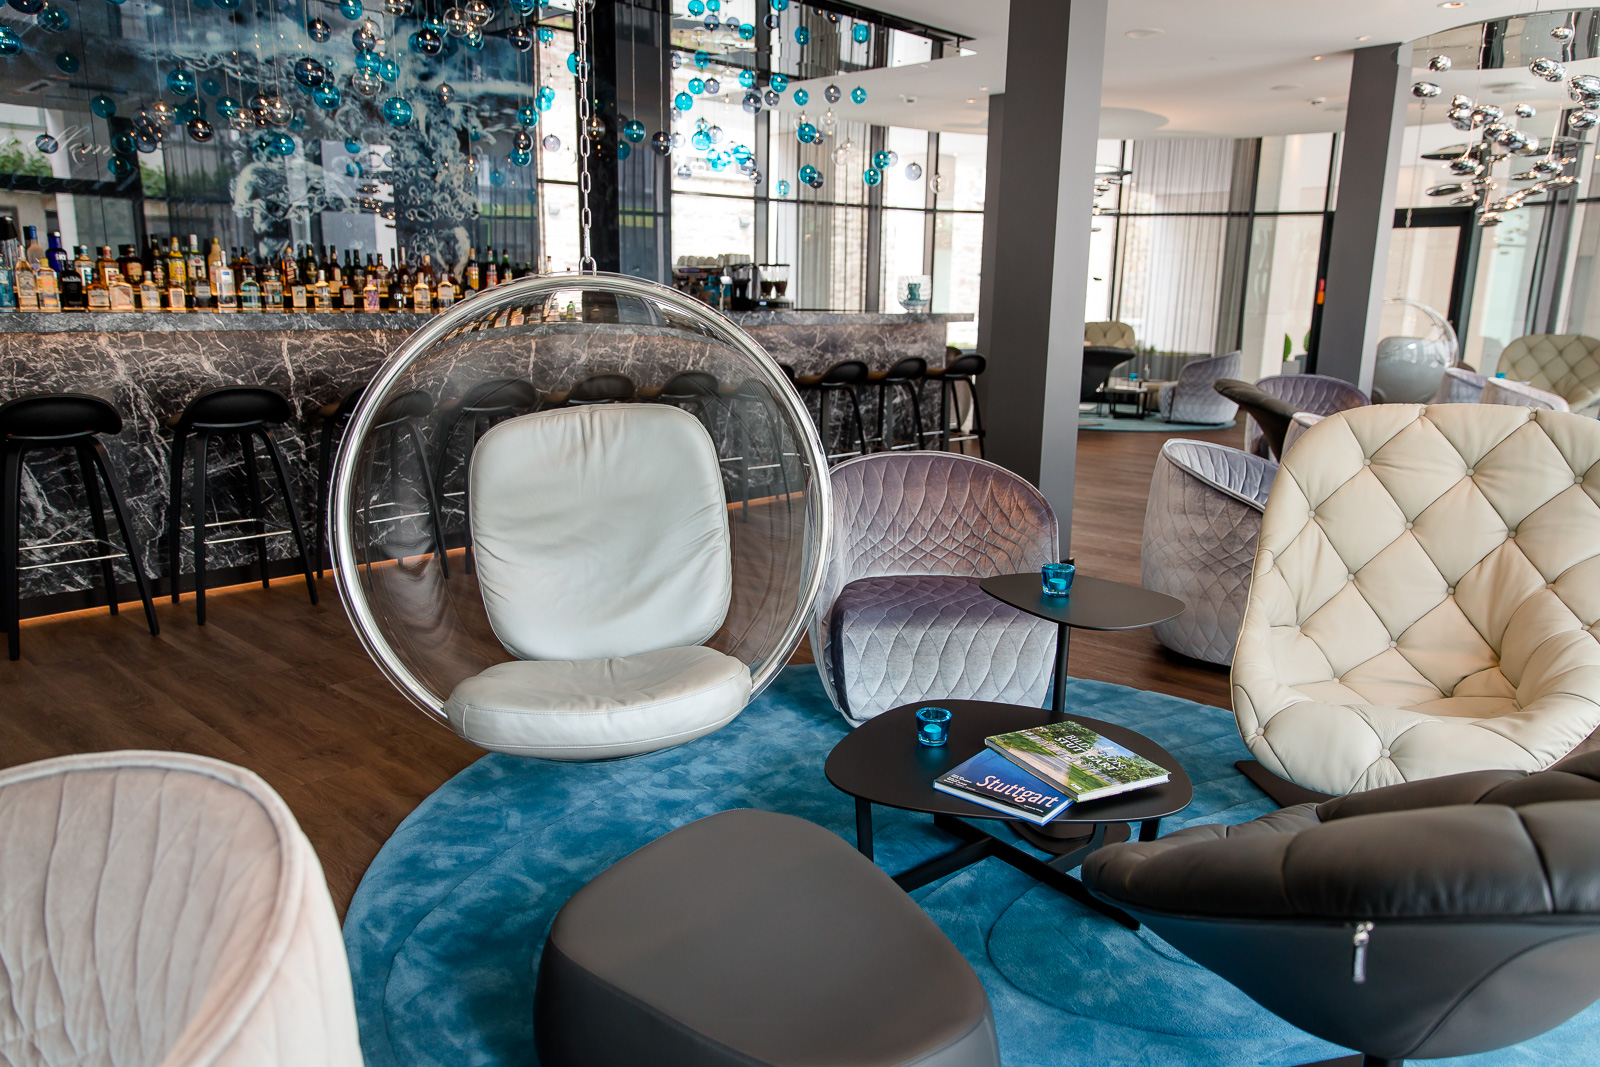 Hotel Motel One Stuttgart-Bad Cannstatt